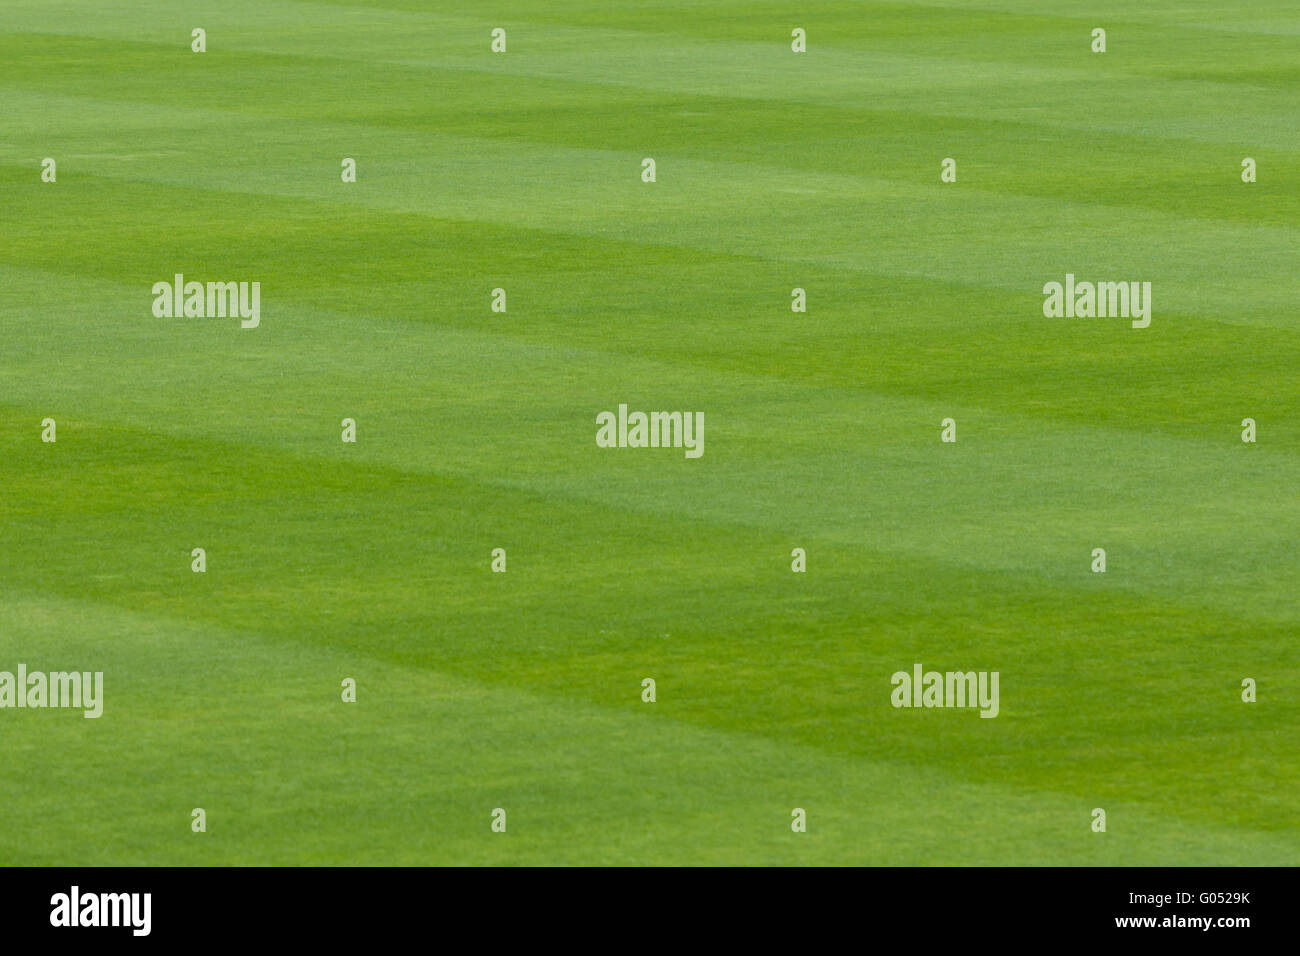 Green grass in a stadium or sports field - Stock Image